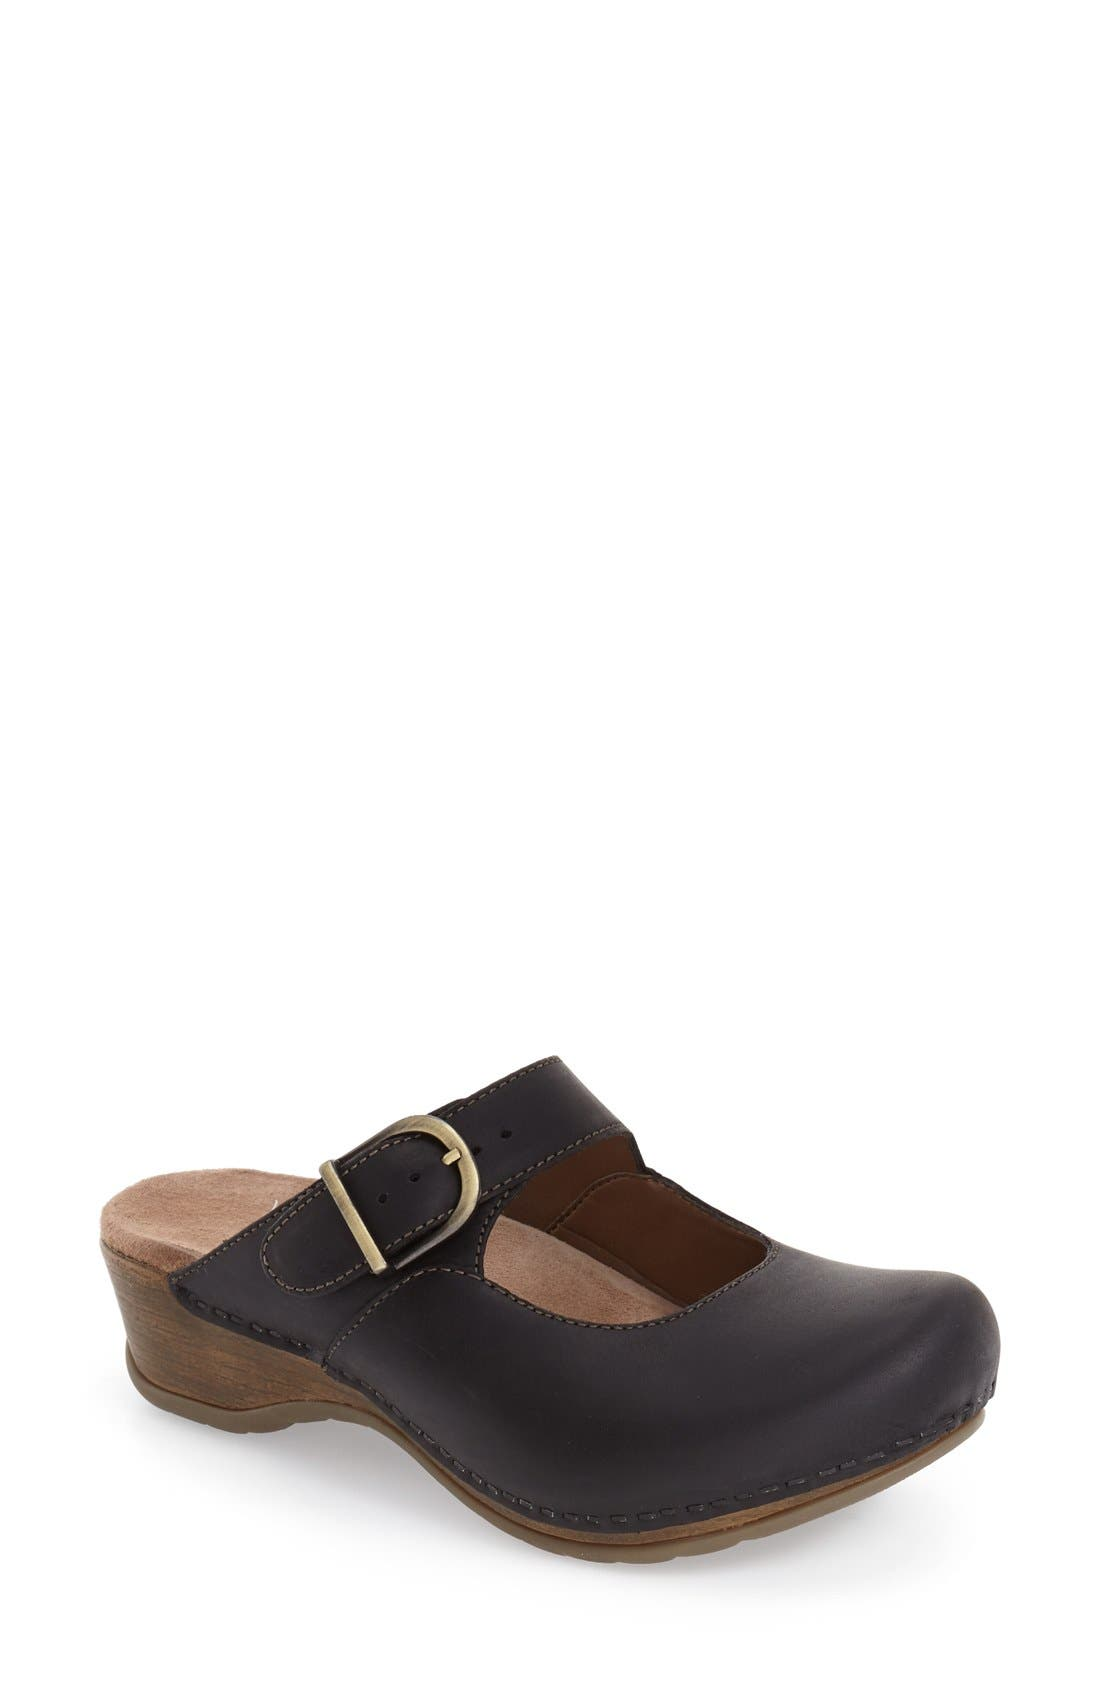 'Martina' Mary Jane Buckle Clog,                         Main,                         color, BLACK OILED LEATHER